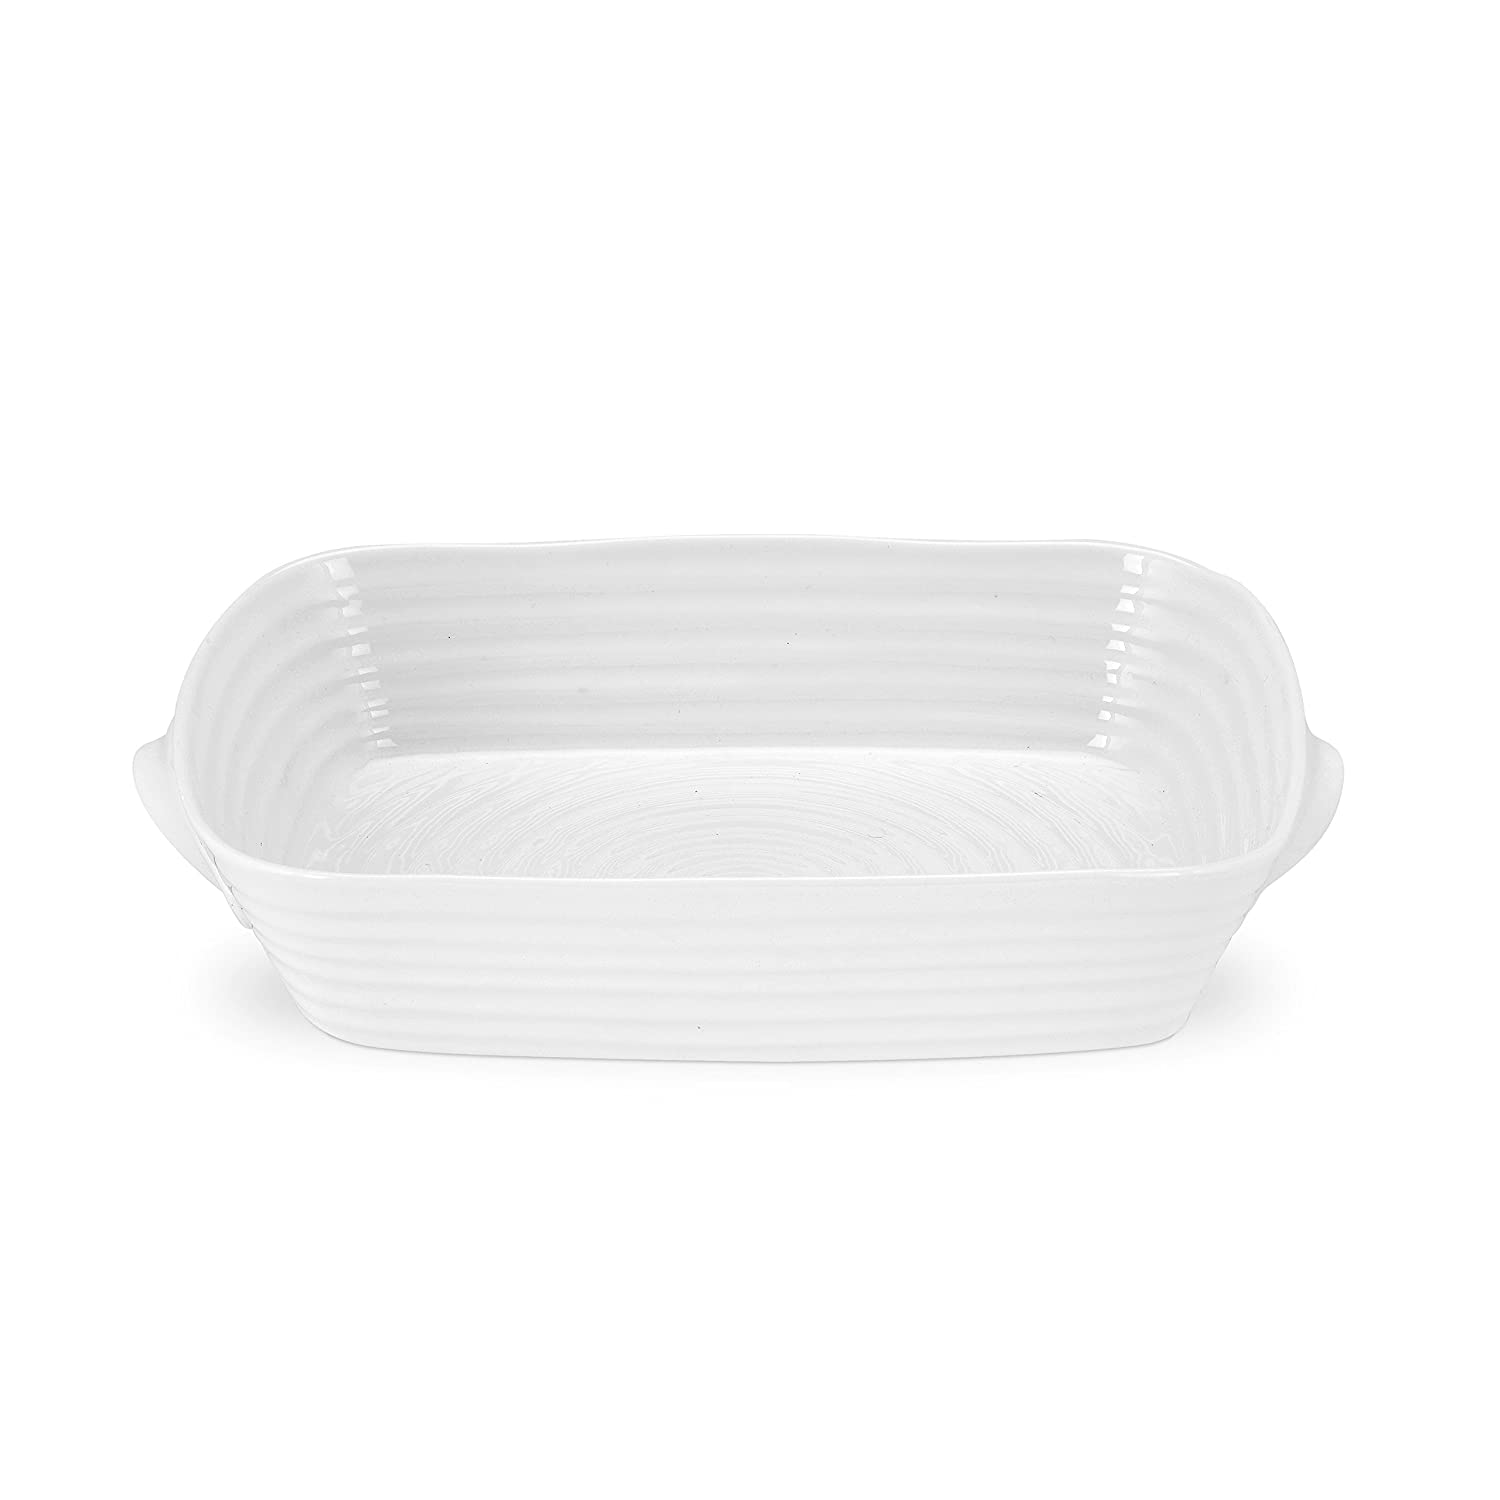 Portmeirion Sophie Conran White Small Handled Rectangular Roasting Dish Portmeirion USA 543799